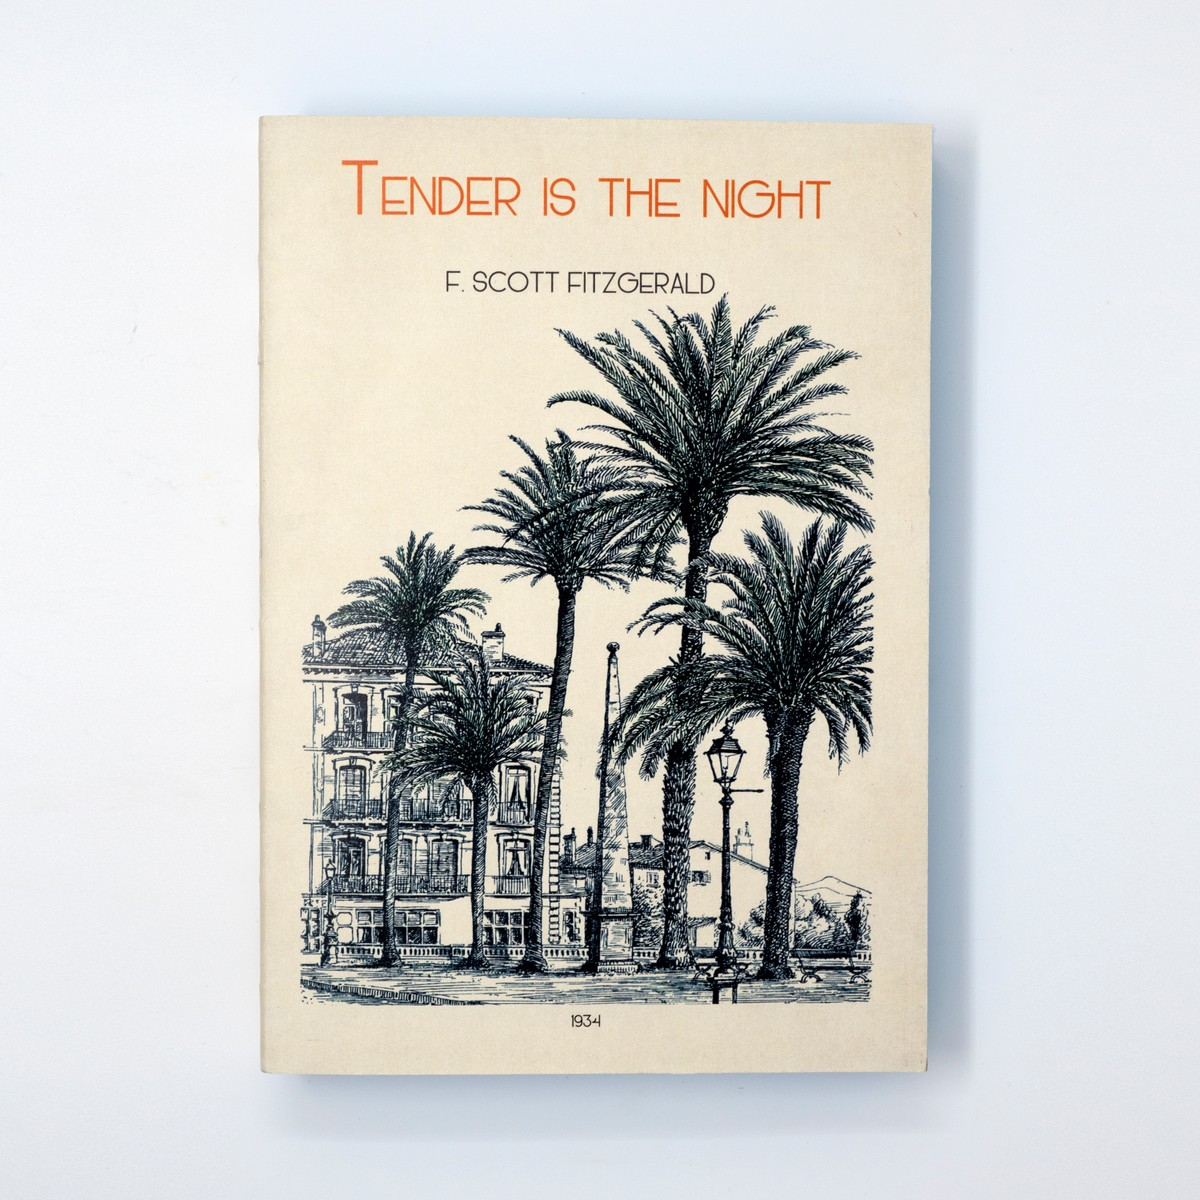 Photo of Tender is the Night Notebook